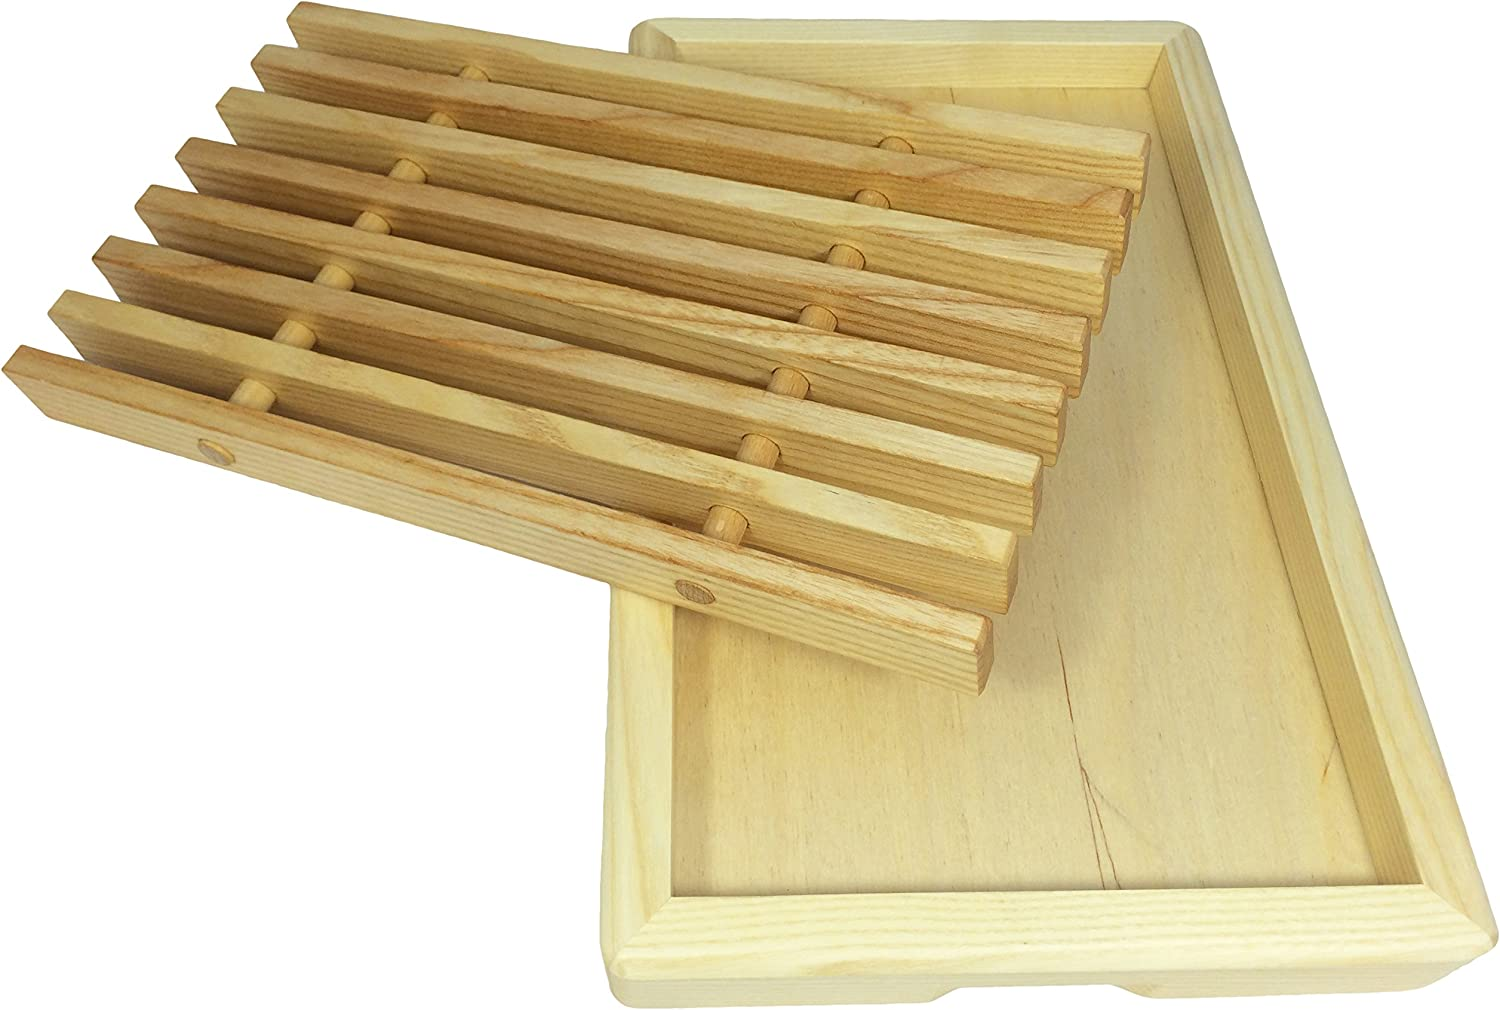 Eppicotispai 38 by 24 by 5cm Ashwood Bread Cutting Board and Tray 15 by 9.4 by 2-Inch